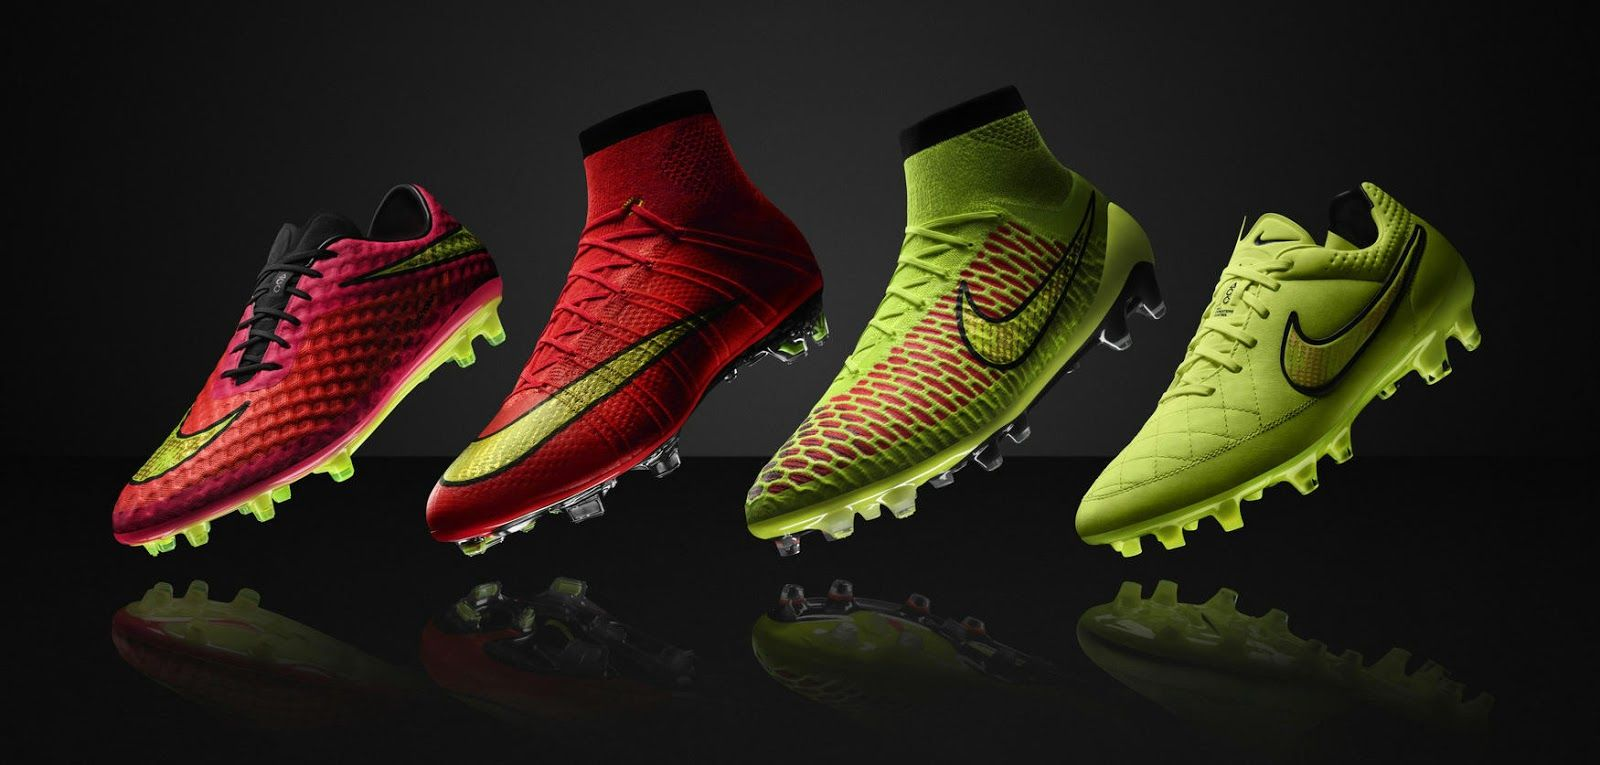 New Nike 2014 World Cup Boots Best Soccer Shoes Nike Football Boots Nike Football